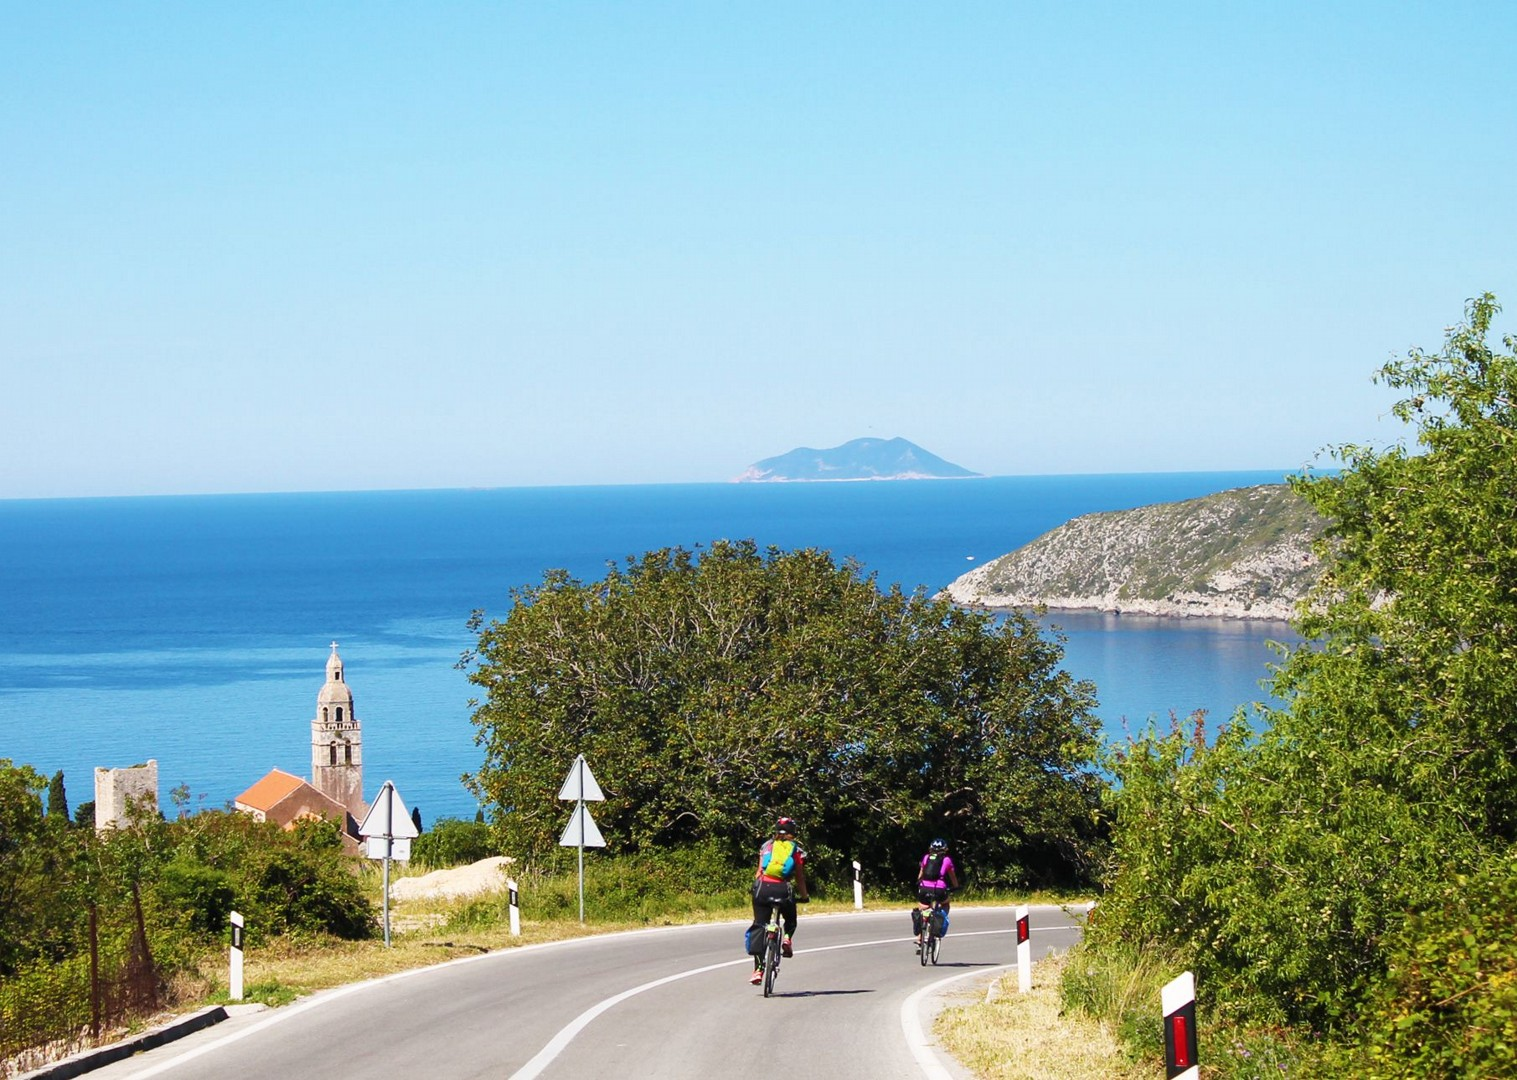 bask-in-the-artistic-peacefulness-of-stari-grad-croatia.jpg - Croatia - Southern Dalmatia - Bike and Boat Holiday - Leisure Cycling